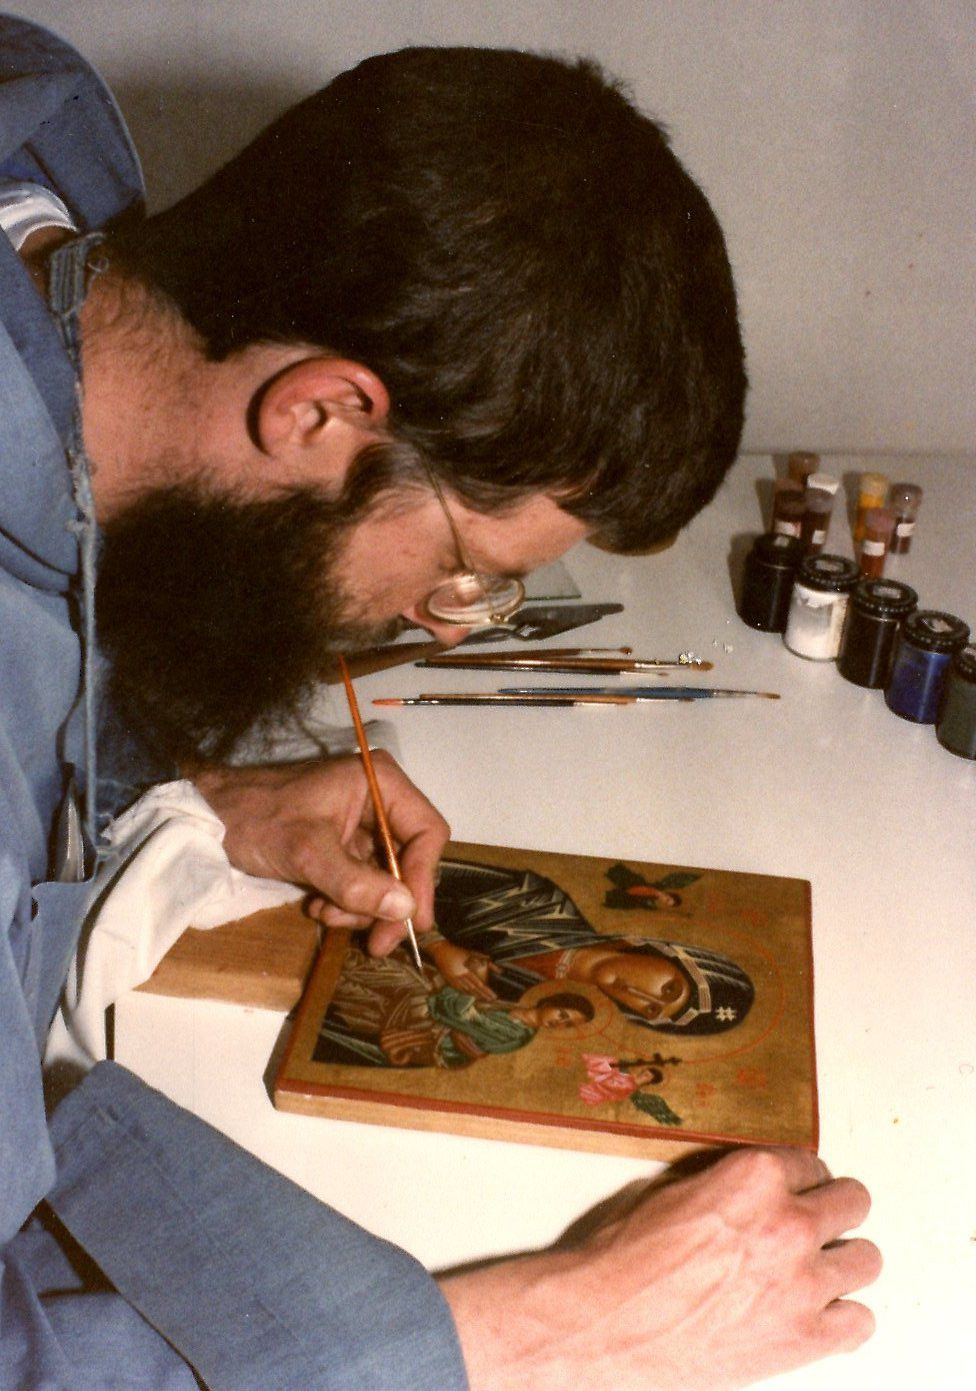 A younger Prior Christian writing an Icon